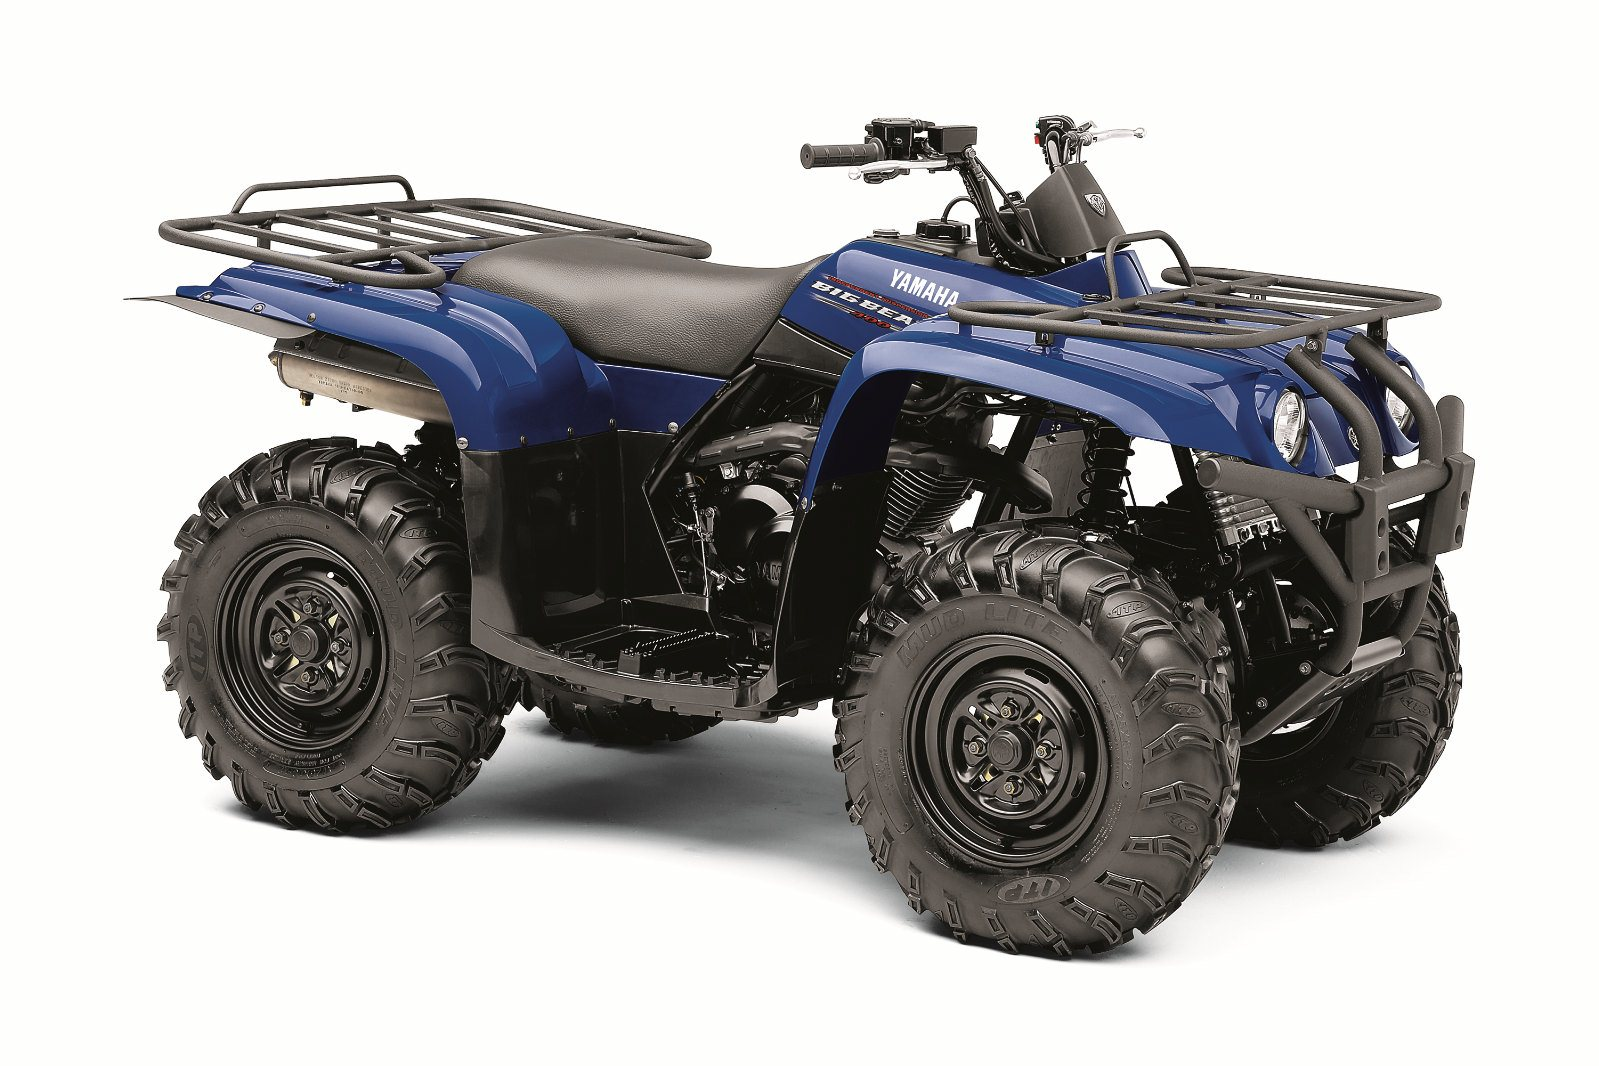 2012 yamaha big bear 400 4x4 irs top speed